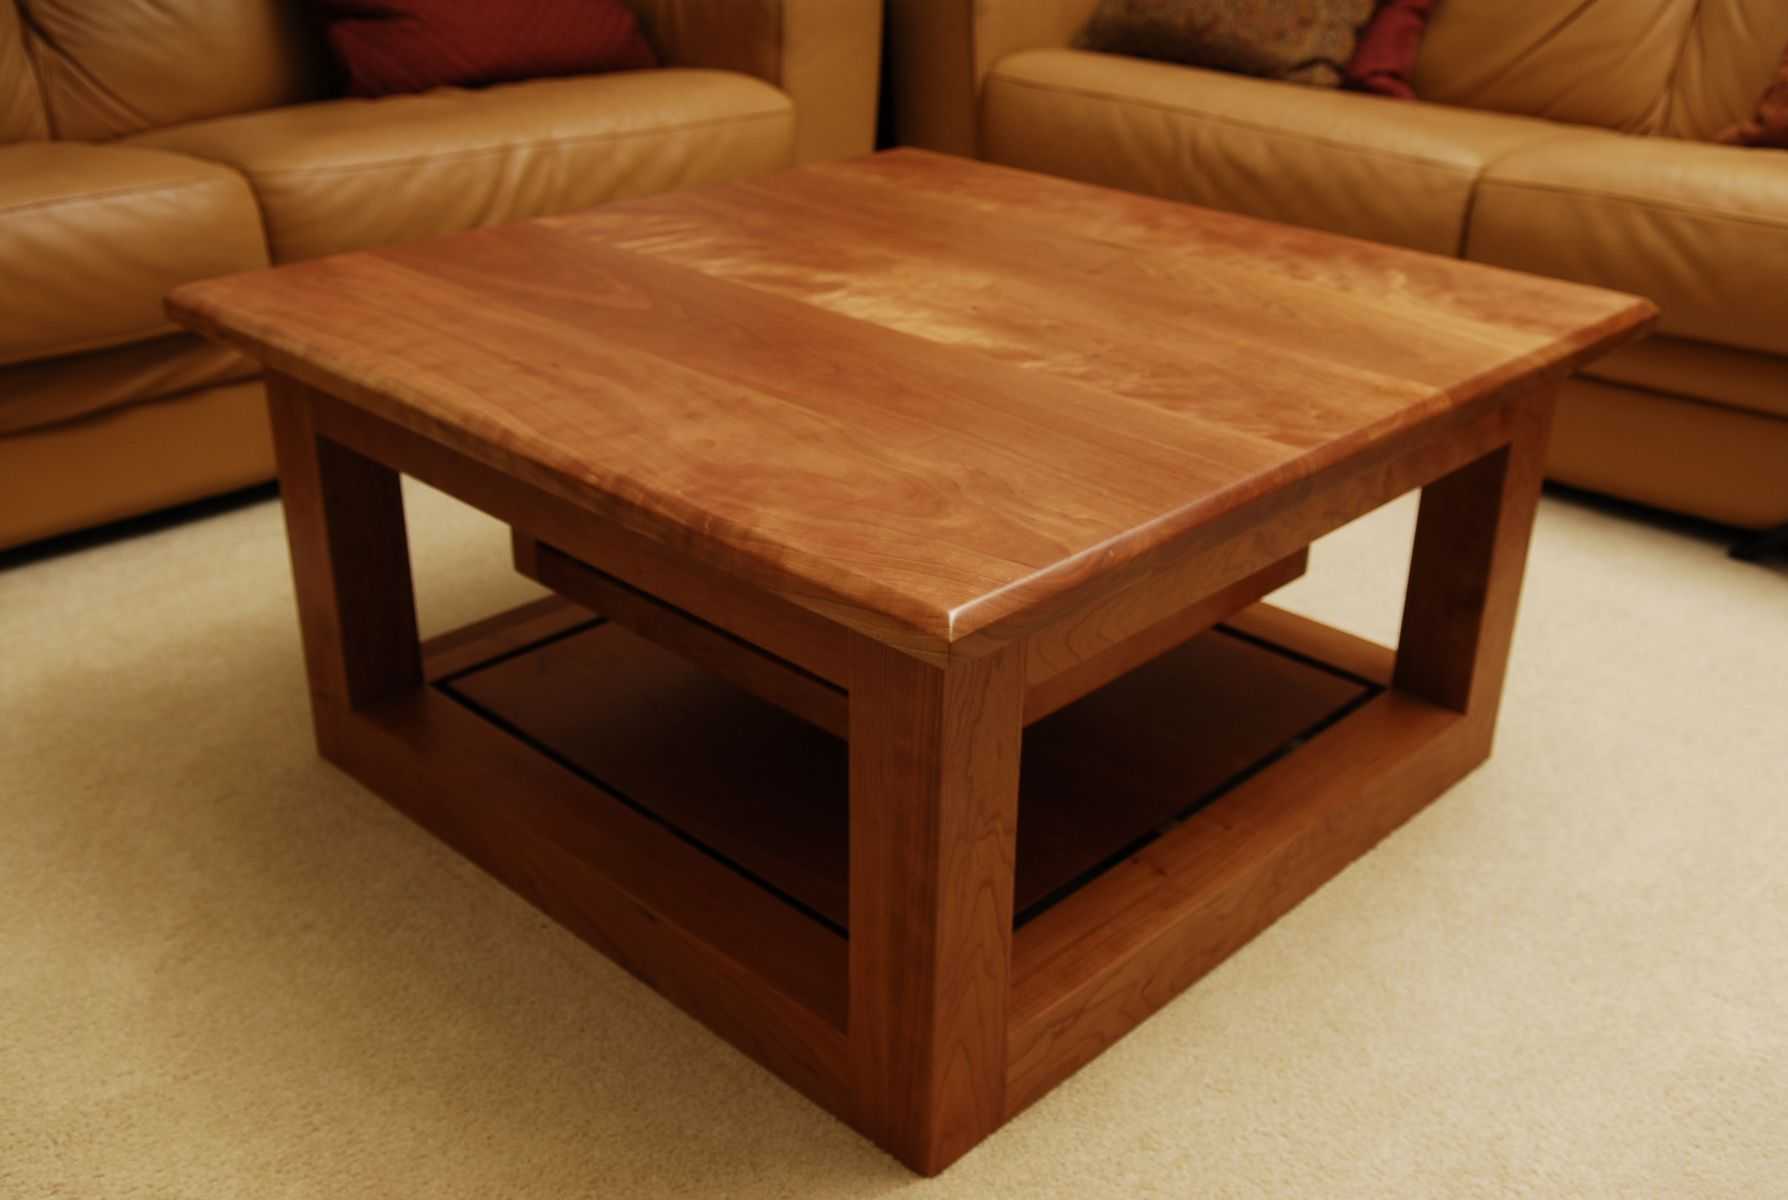 Handmade Cherry Coffee Table by Schmitt Custom Furniture